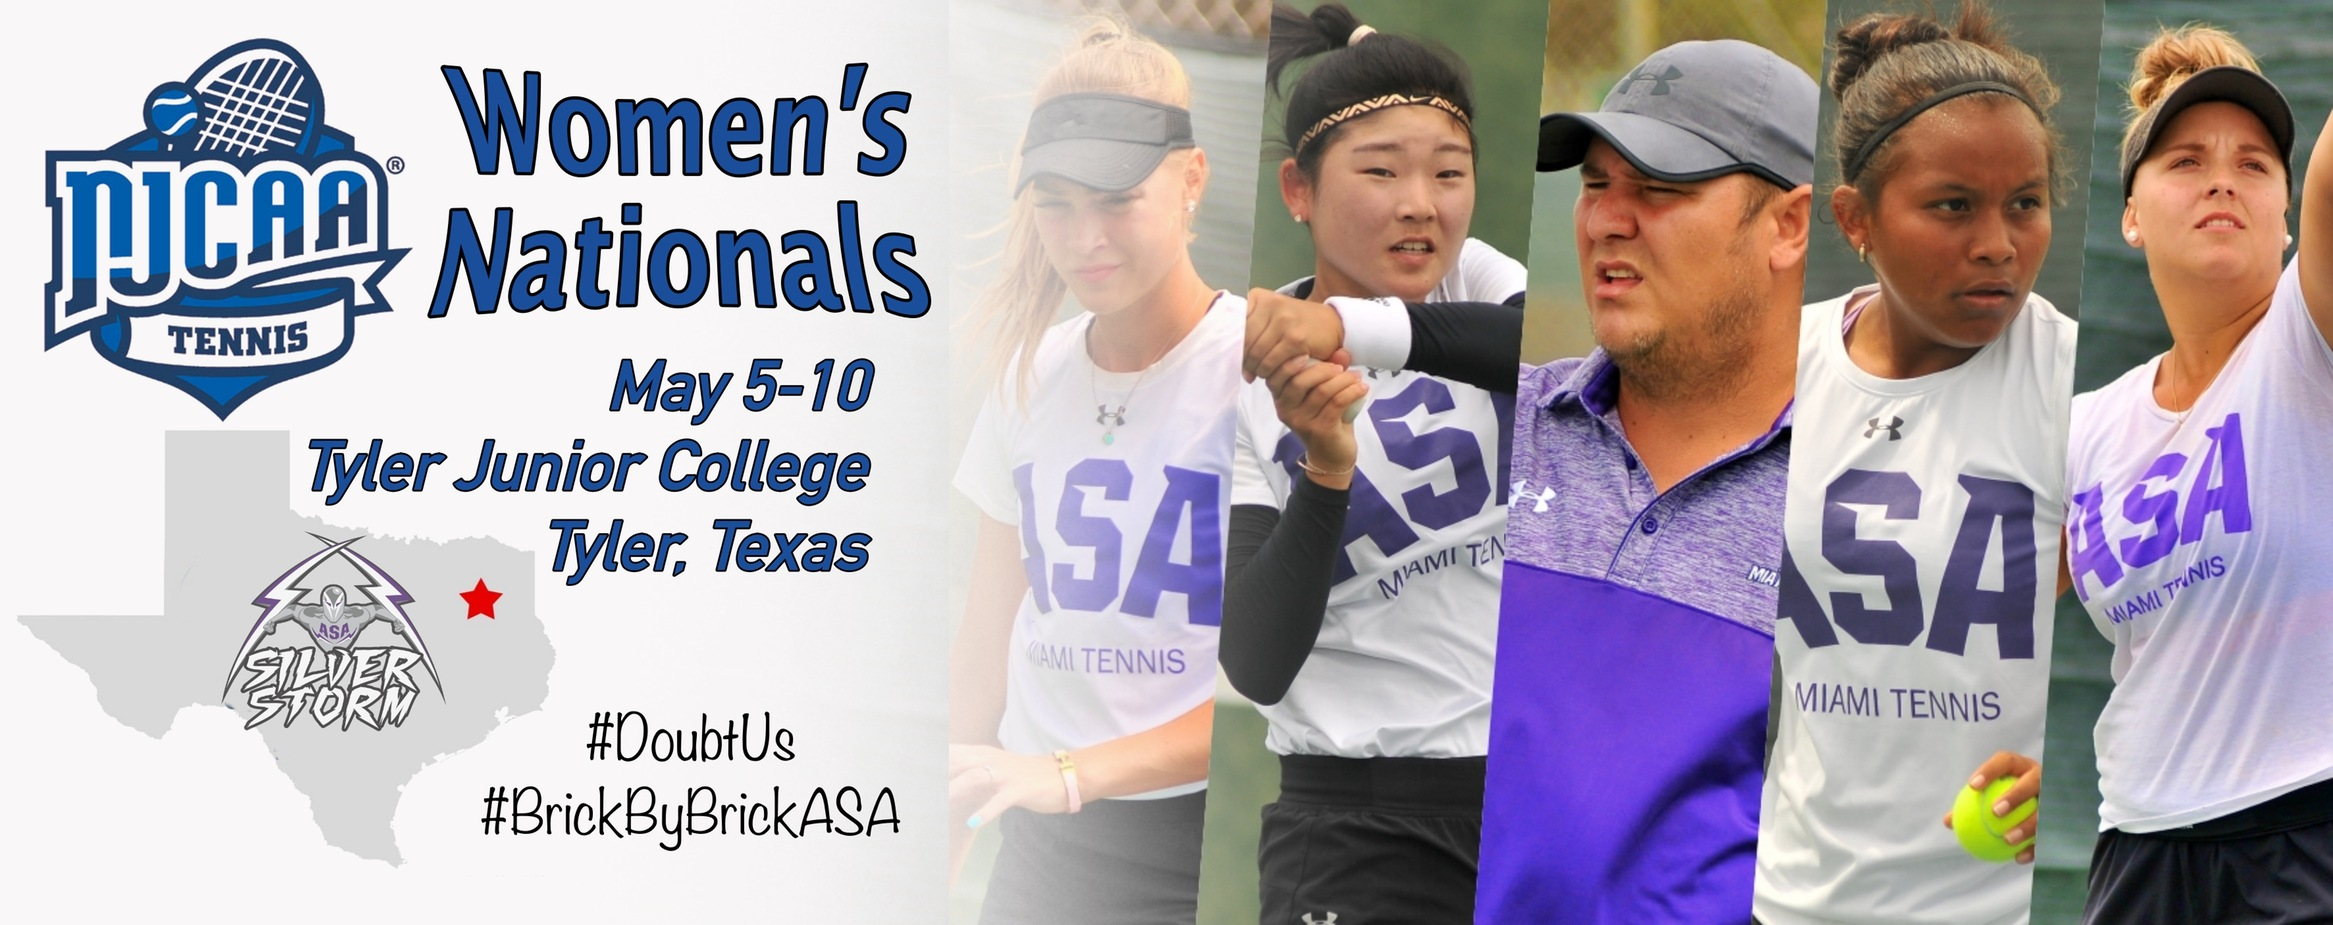 ASA Women, Slack Headed To Nationals With Chip On Their Shoulder